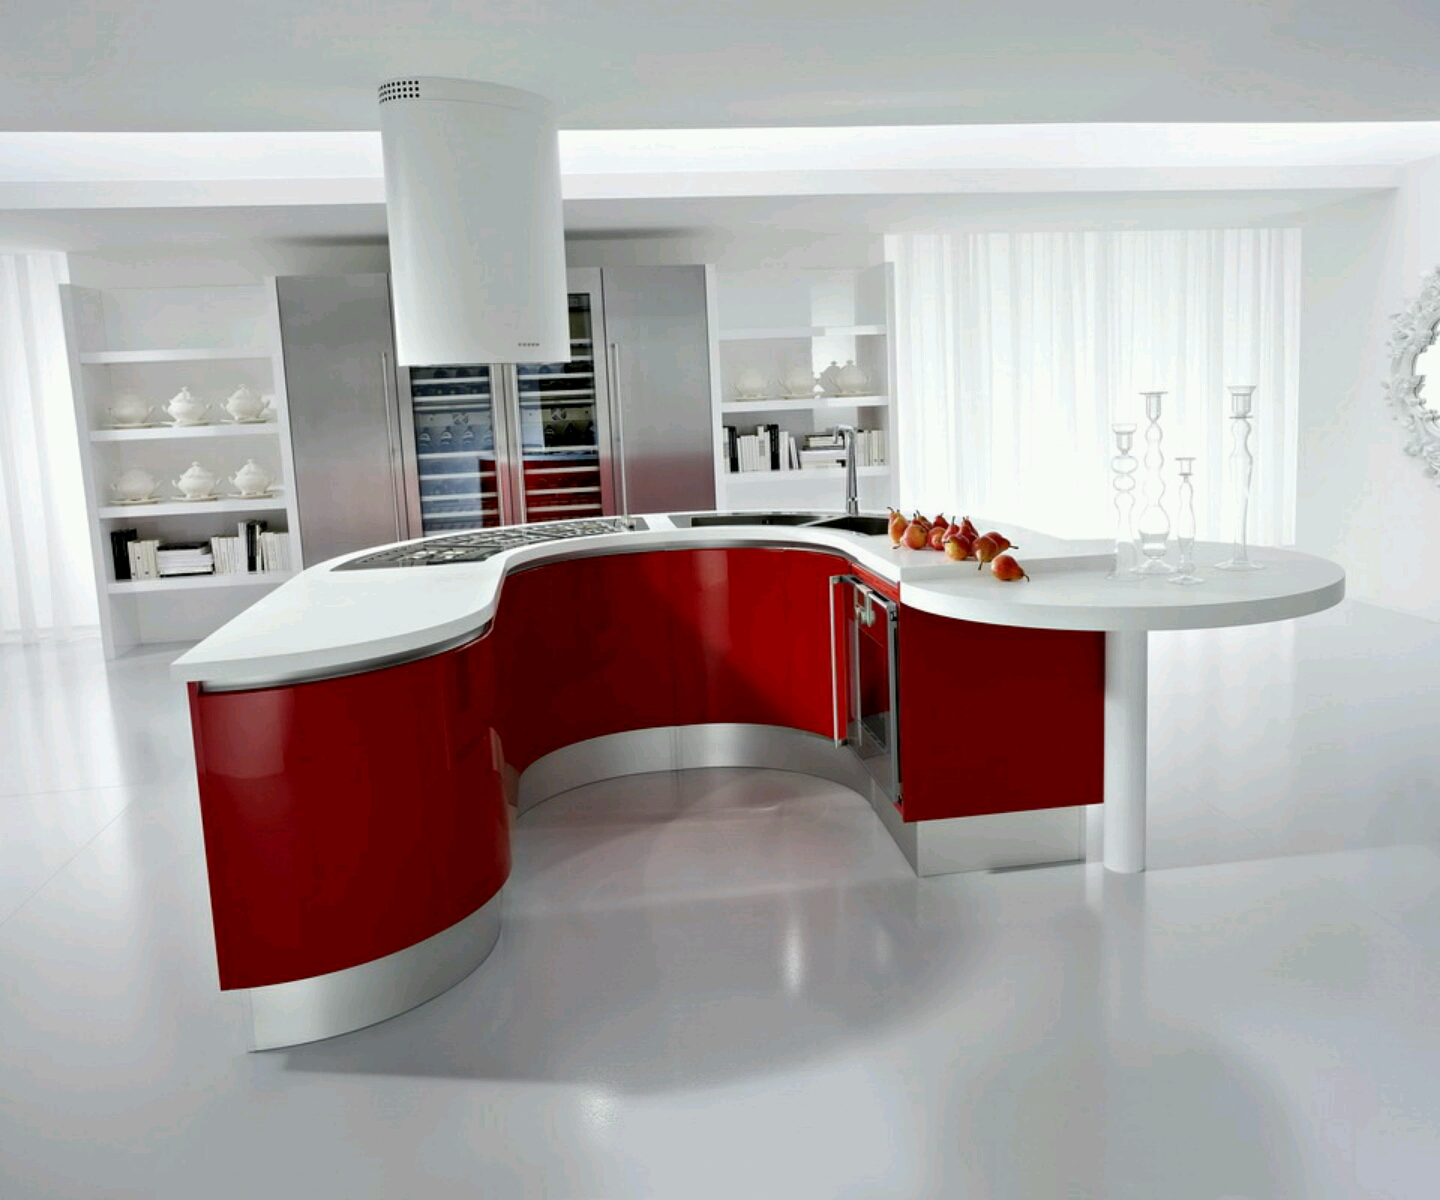 Modern kitchen cabinets designs ideas furniture gallery for Modern kitchen cabinets